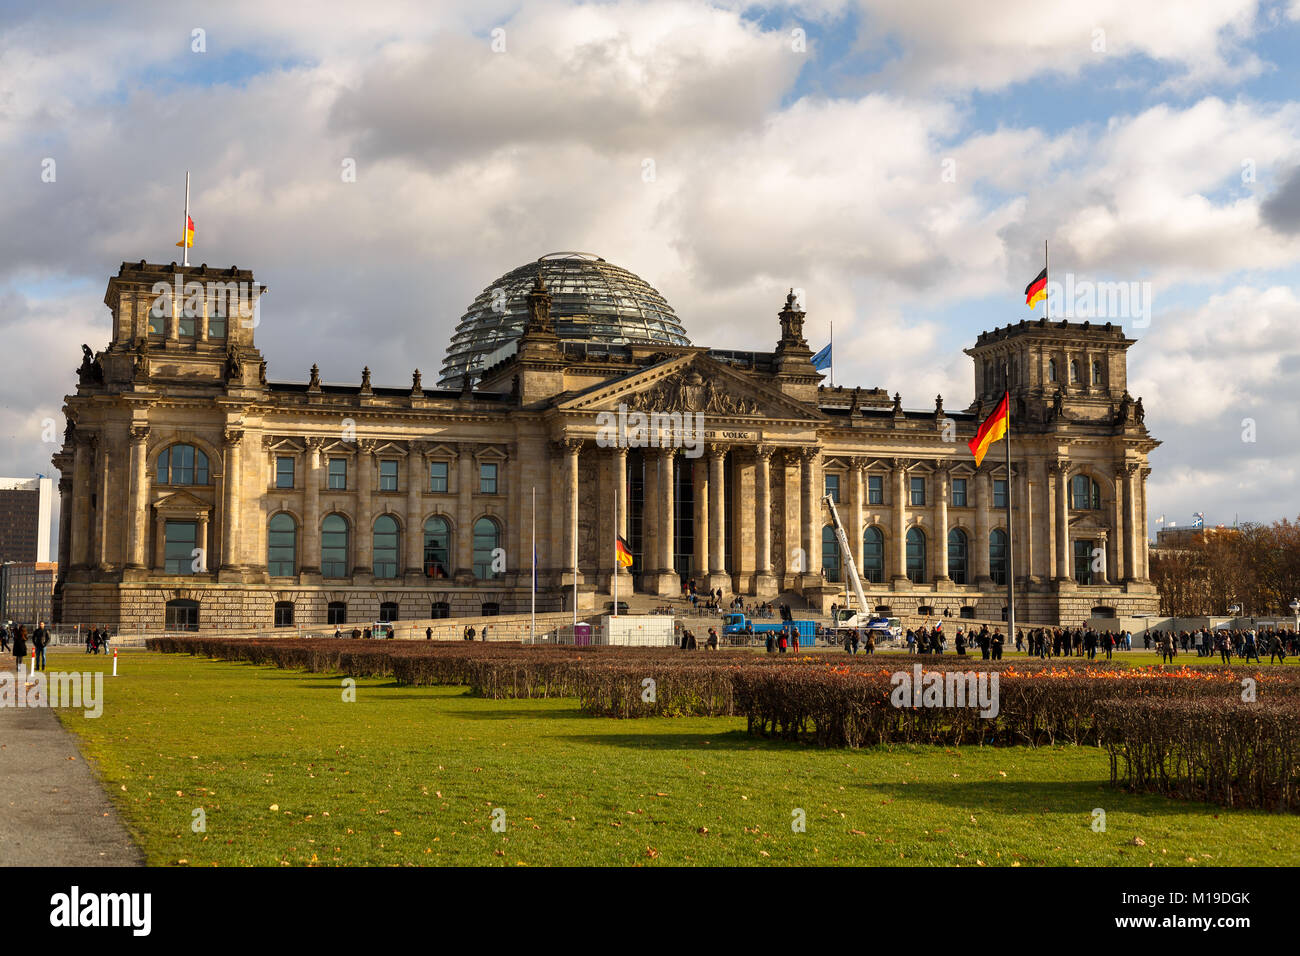 Reichstag Building, Berlin - Stock Image